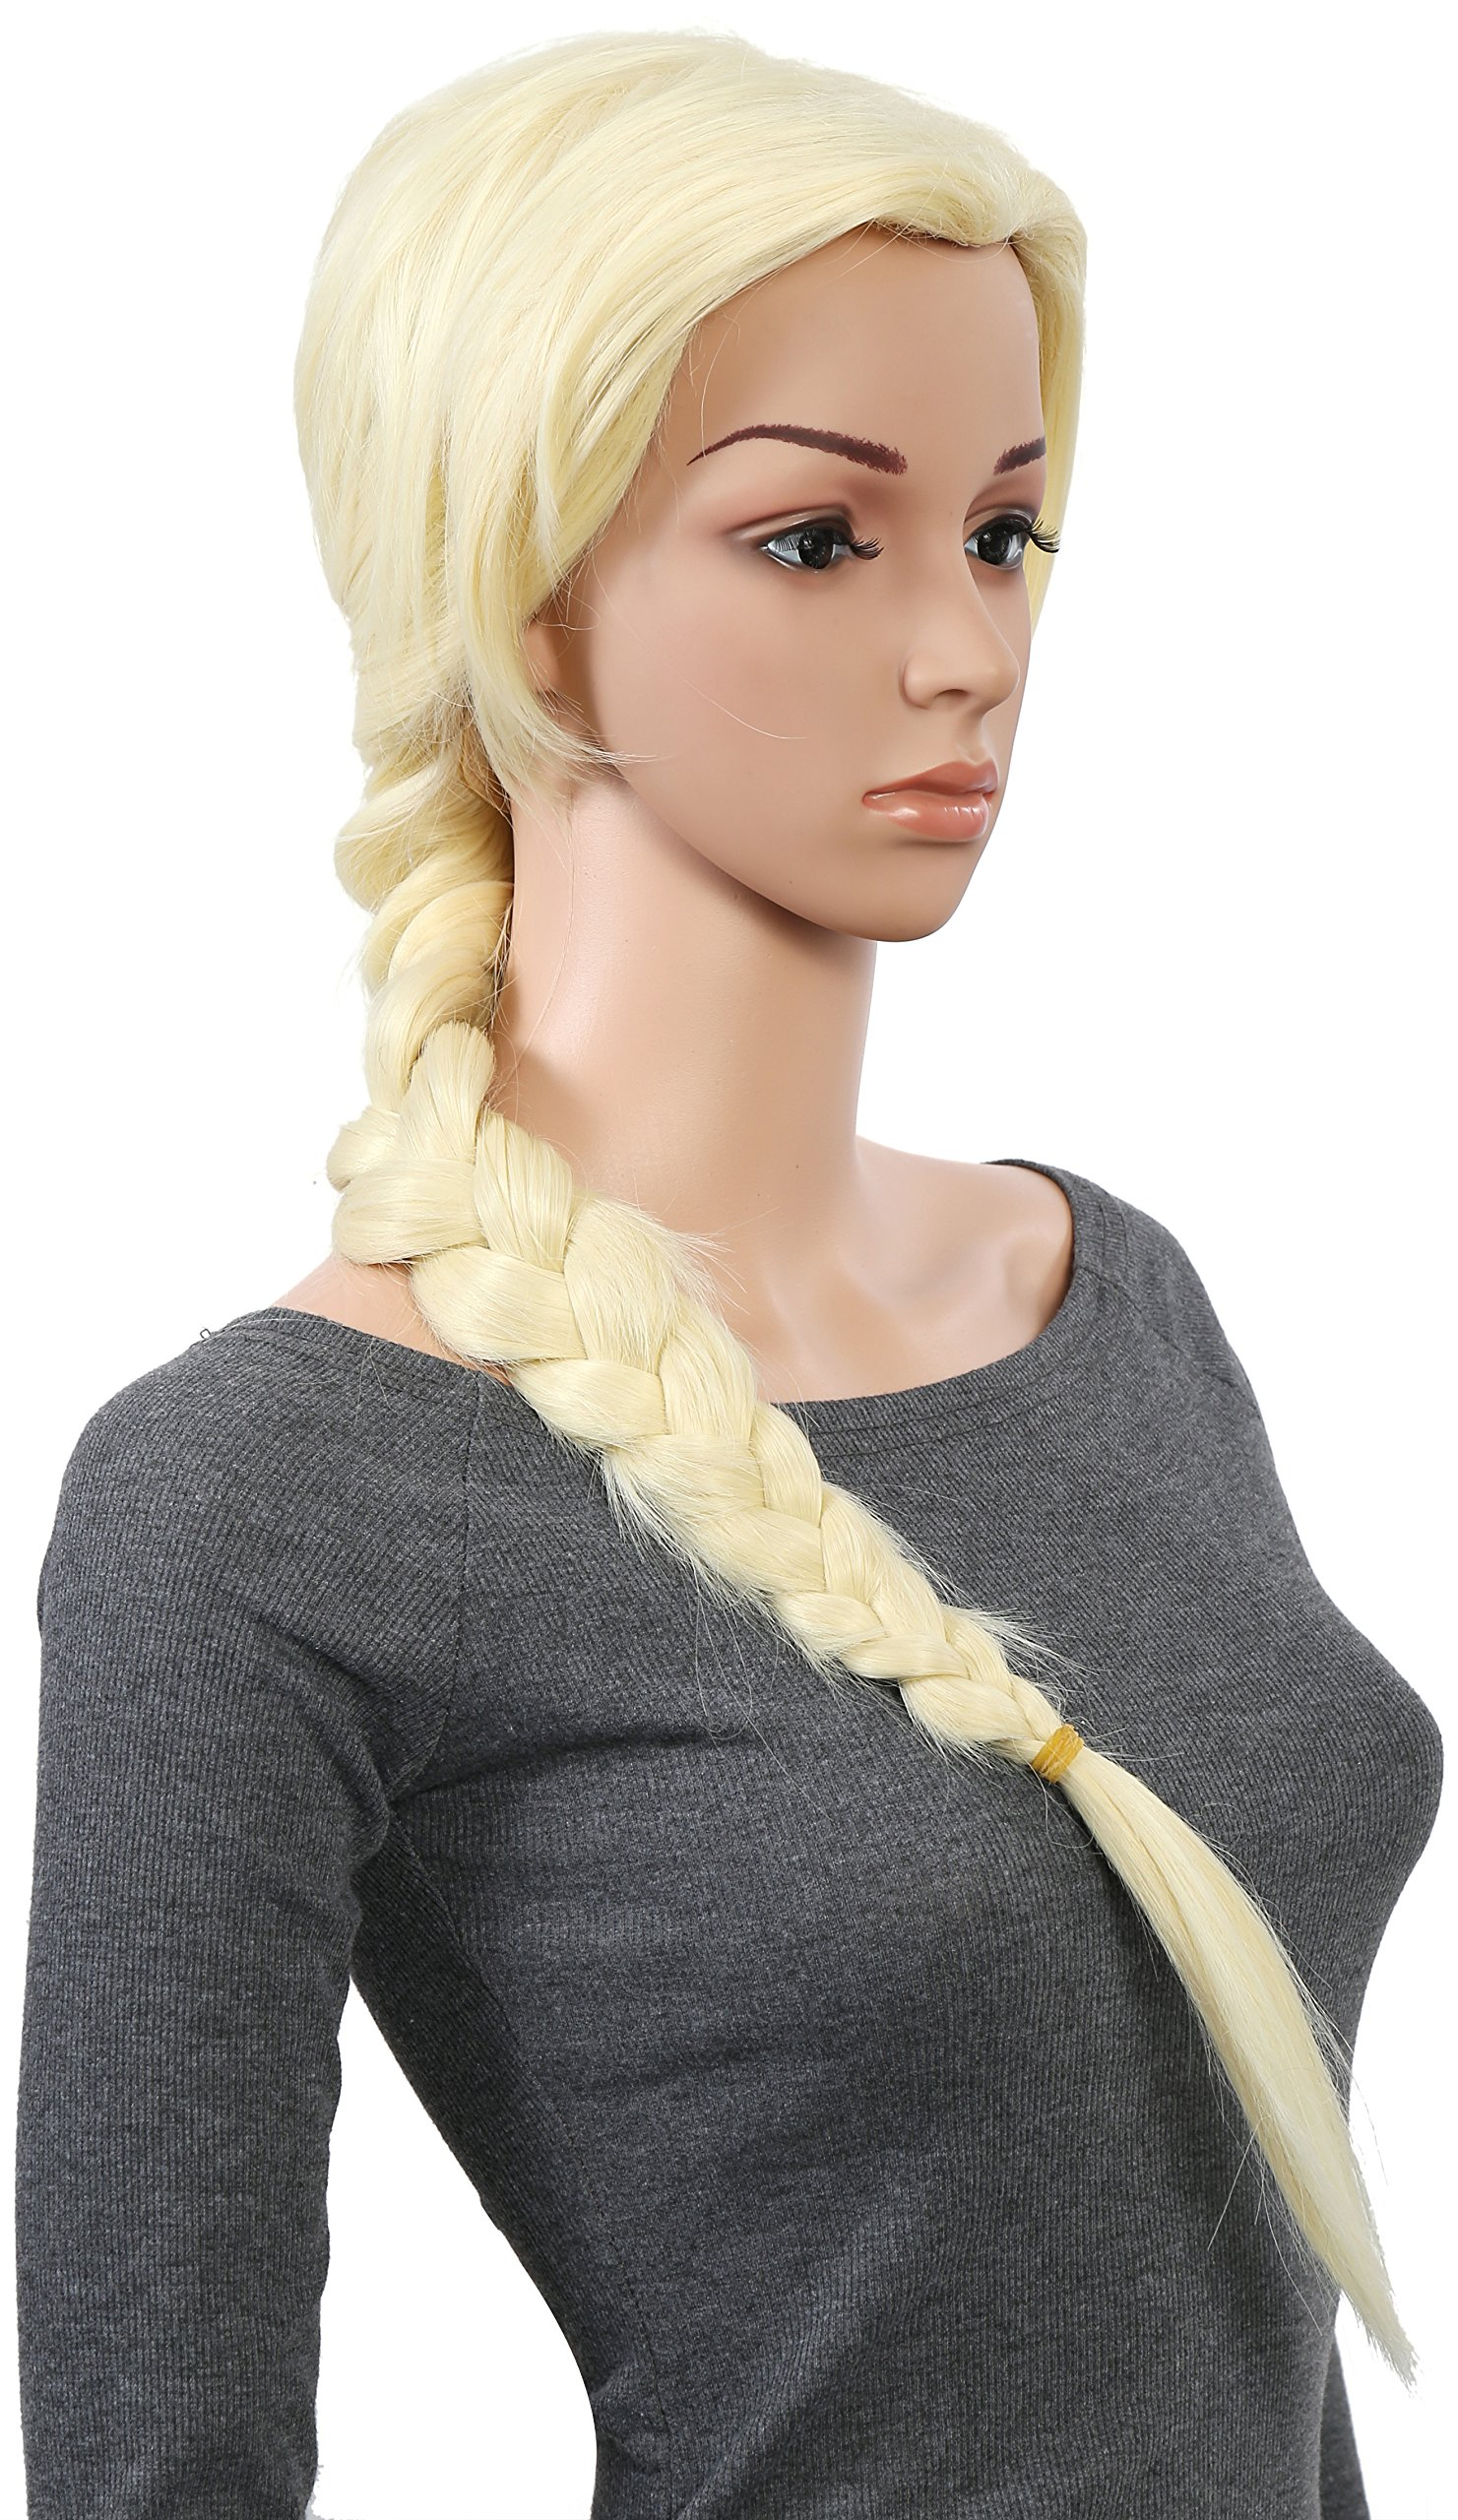 OneDor Long Braided Ponytail Cosplay Costume Light Blonde Wig by Onedor (Image #2)